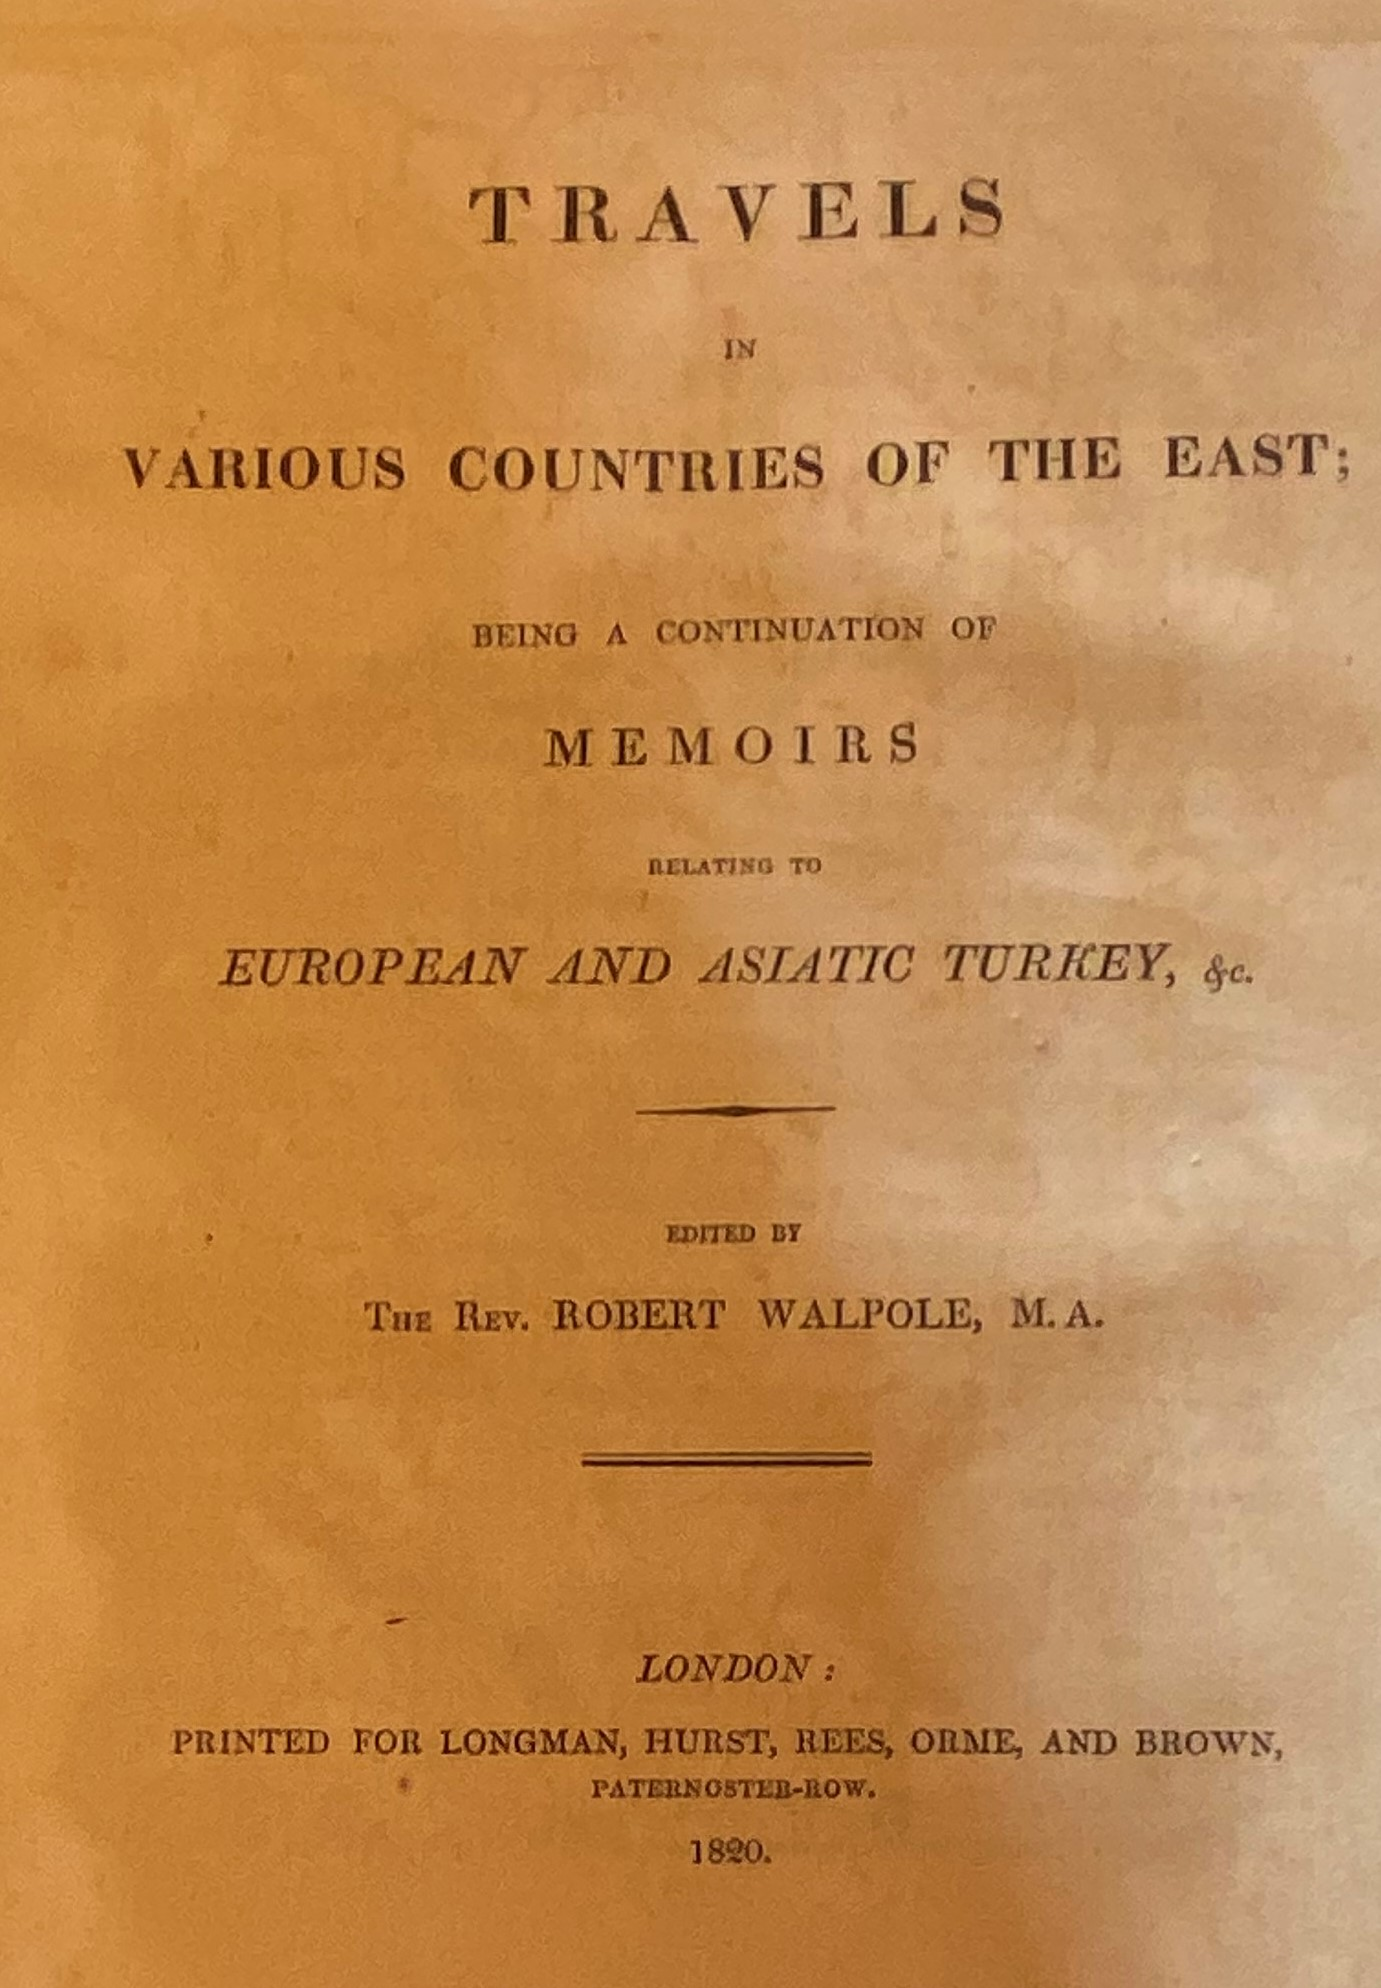 Walpole (Robert)ÿMemoirs Relating to European and Asiatic Turkey, lg. 4to Lond. 1817. Vignette - Image 2 of 4